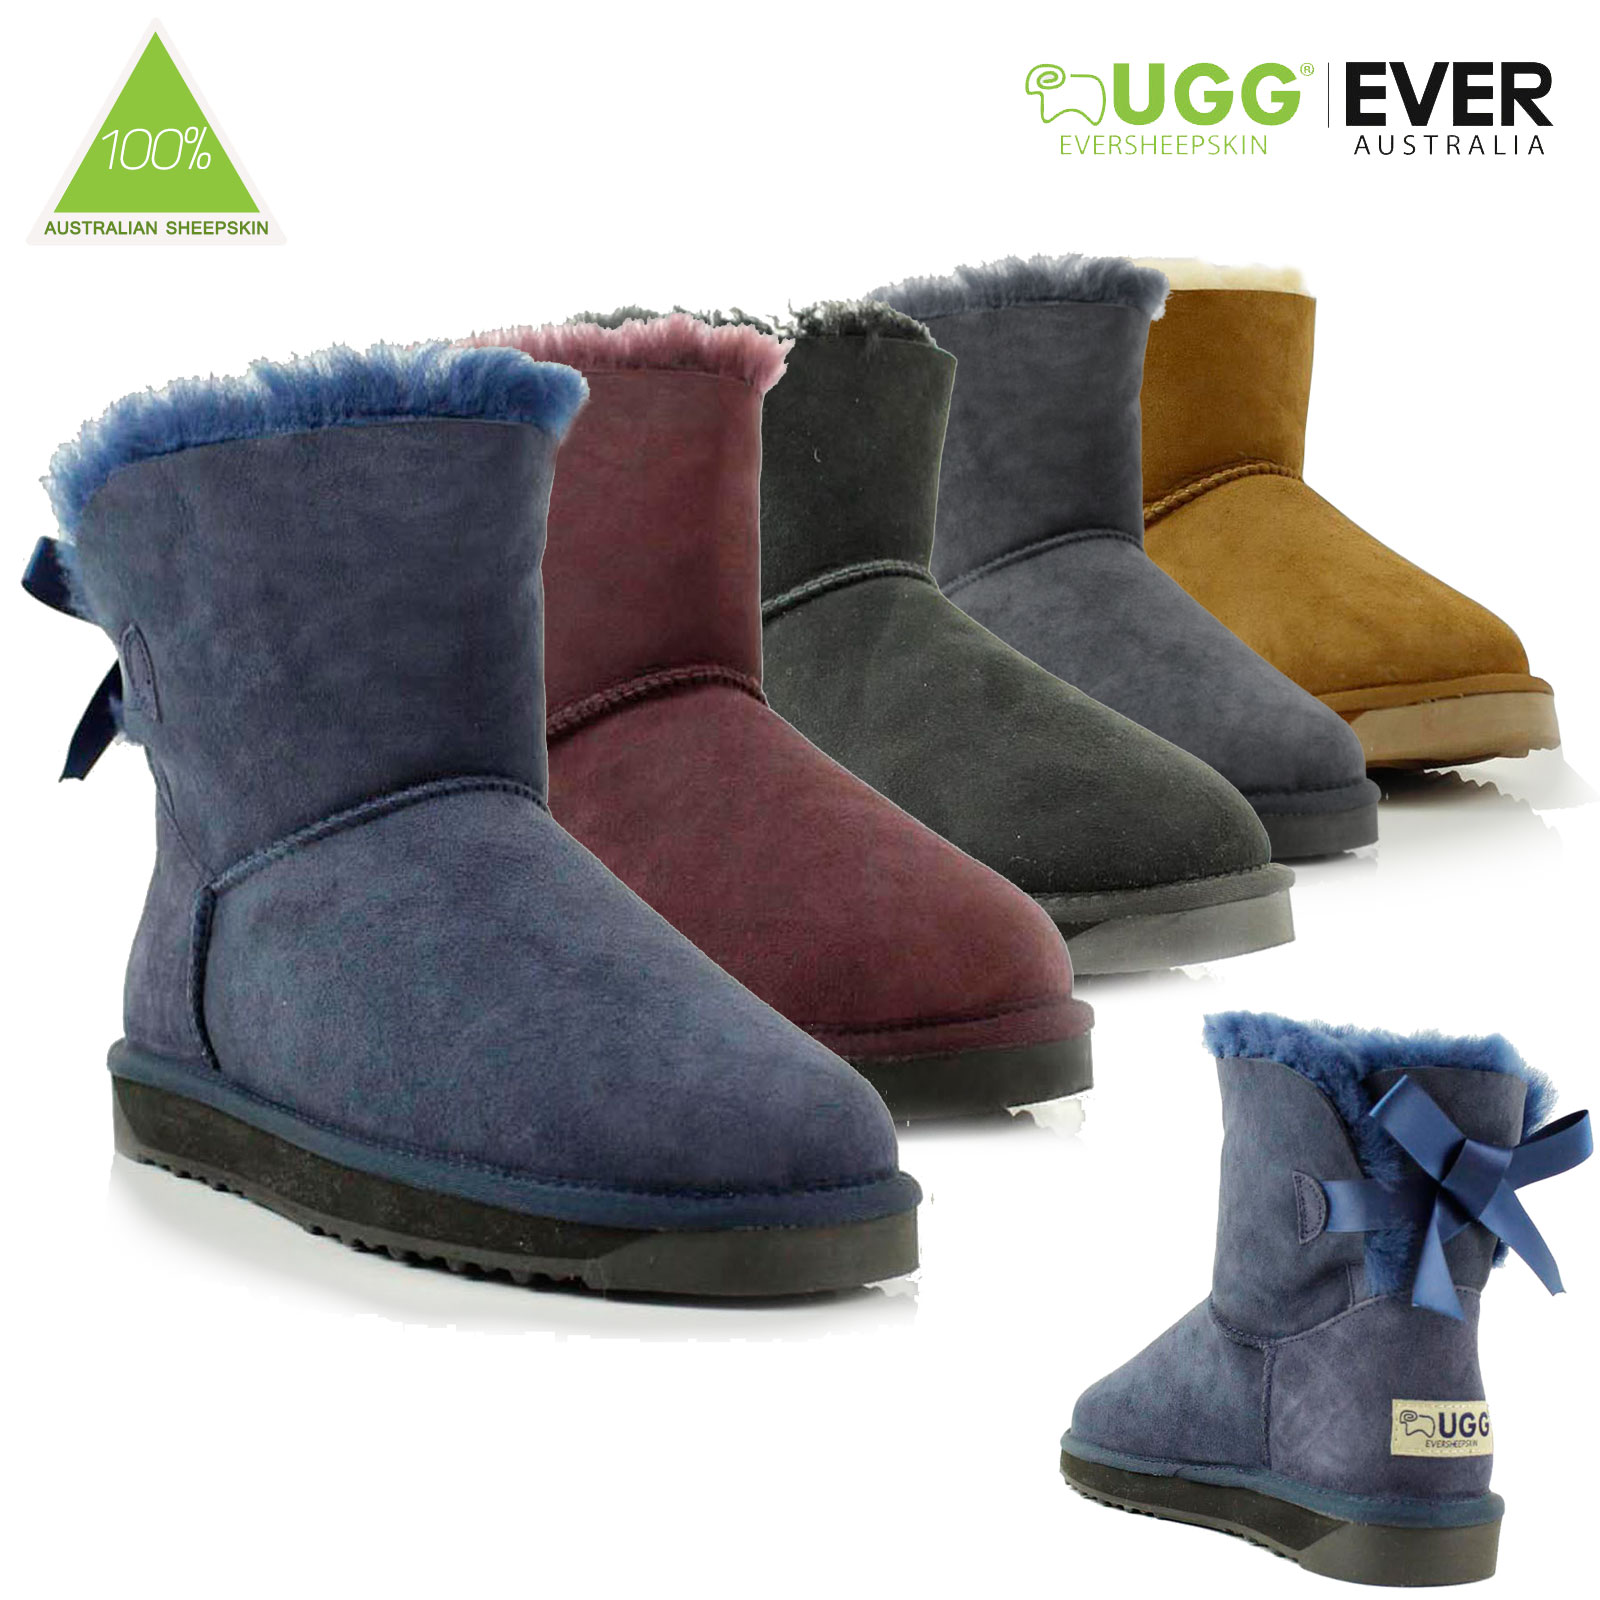 Ugg-Boots-Sheepskin-100-Australian-Wool-Ladies-Mini-